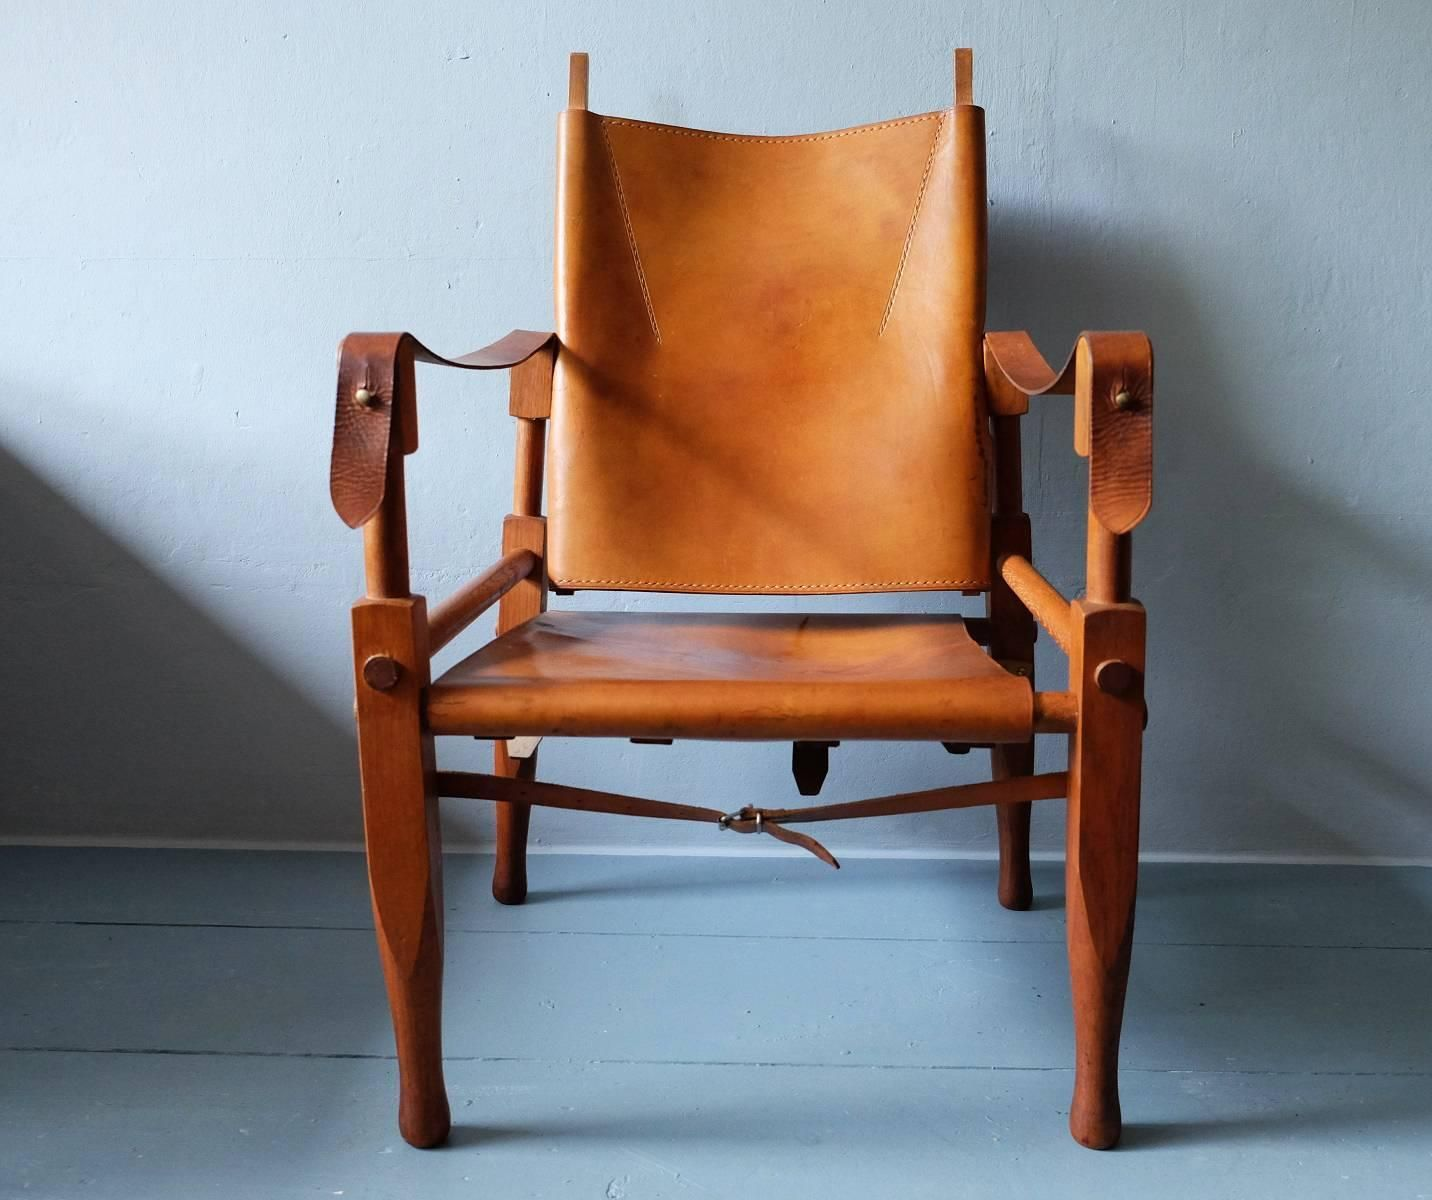 Safari Chair Designed by Wilhelm Kienzle for Wohnbedarf, 1950s | From a unique collection of antique and modern chairs at https://www.1stdibs.com/furniture/seating/chairs/